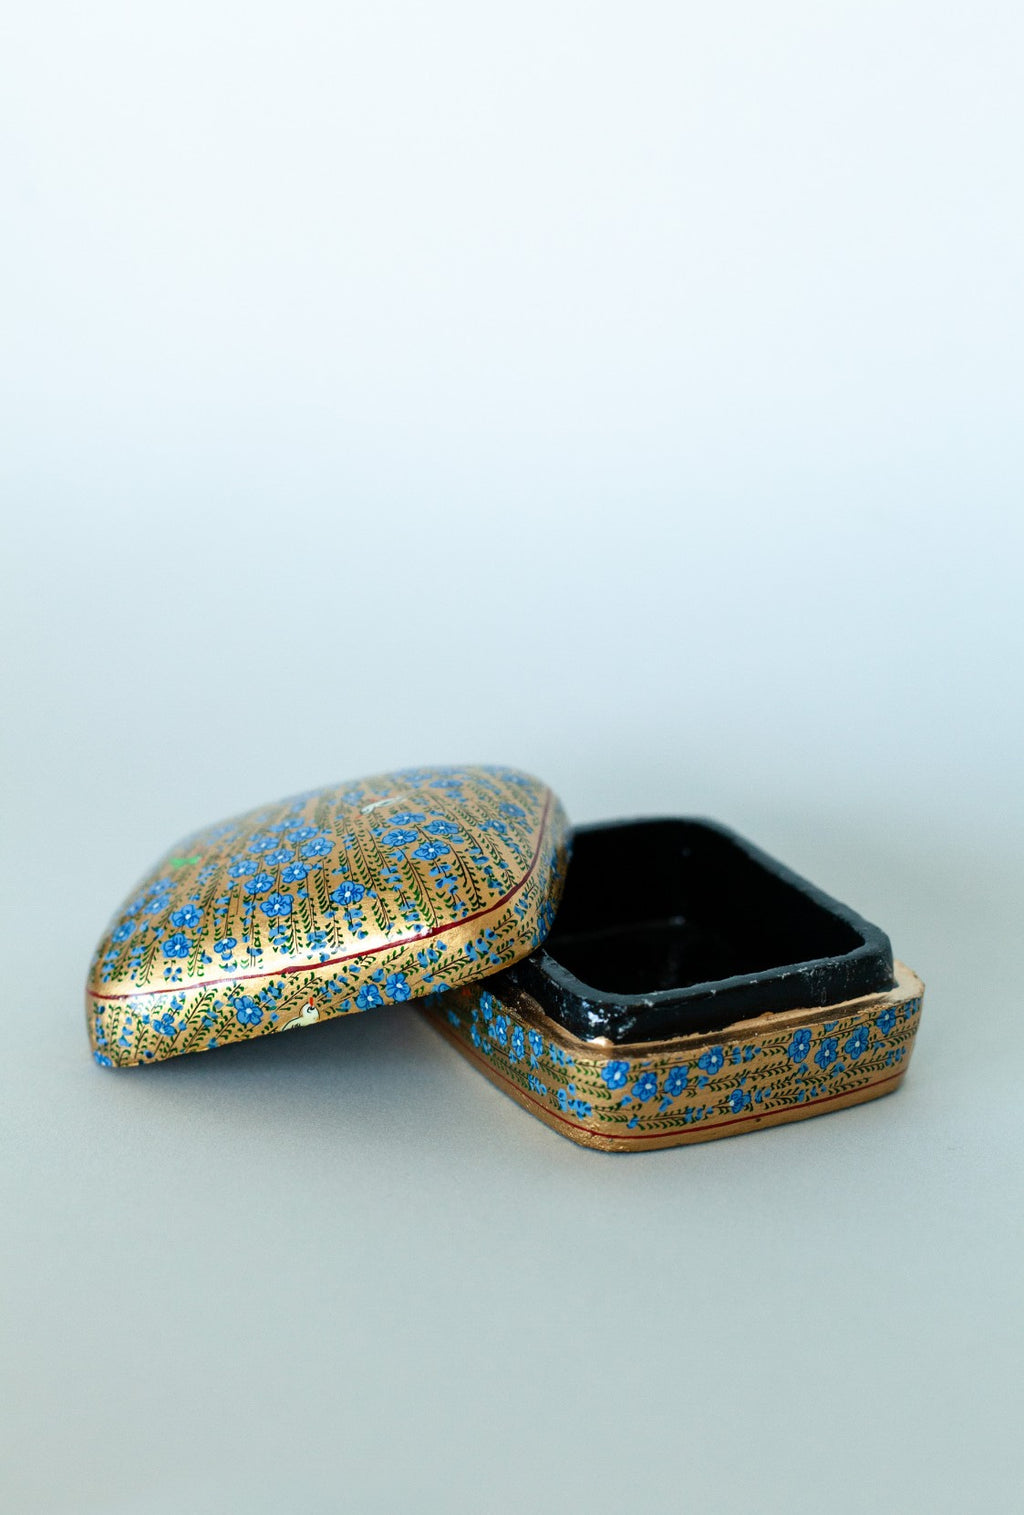 Small Floral Decorative Box - Fallow Home.